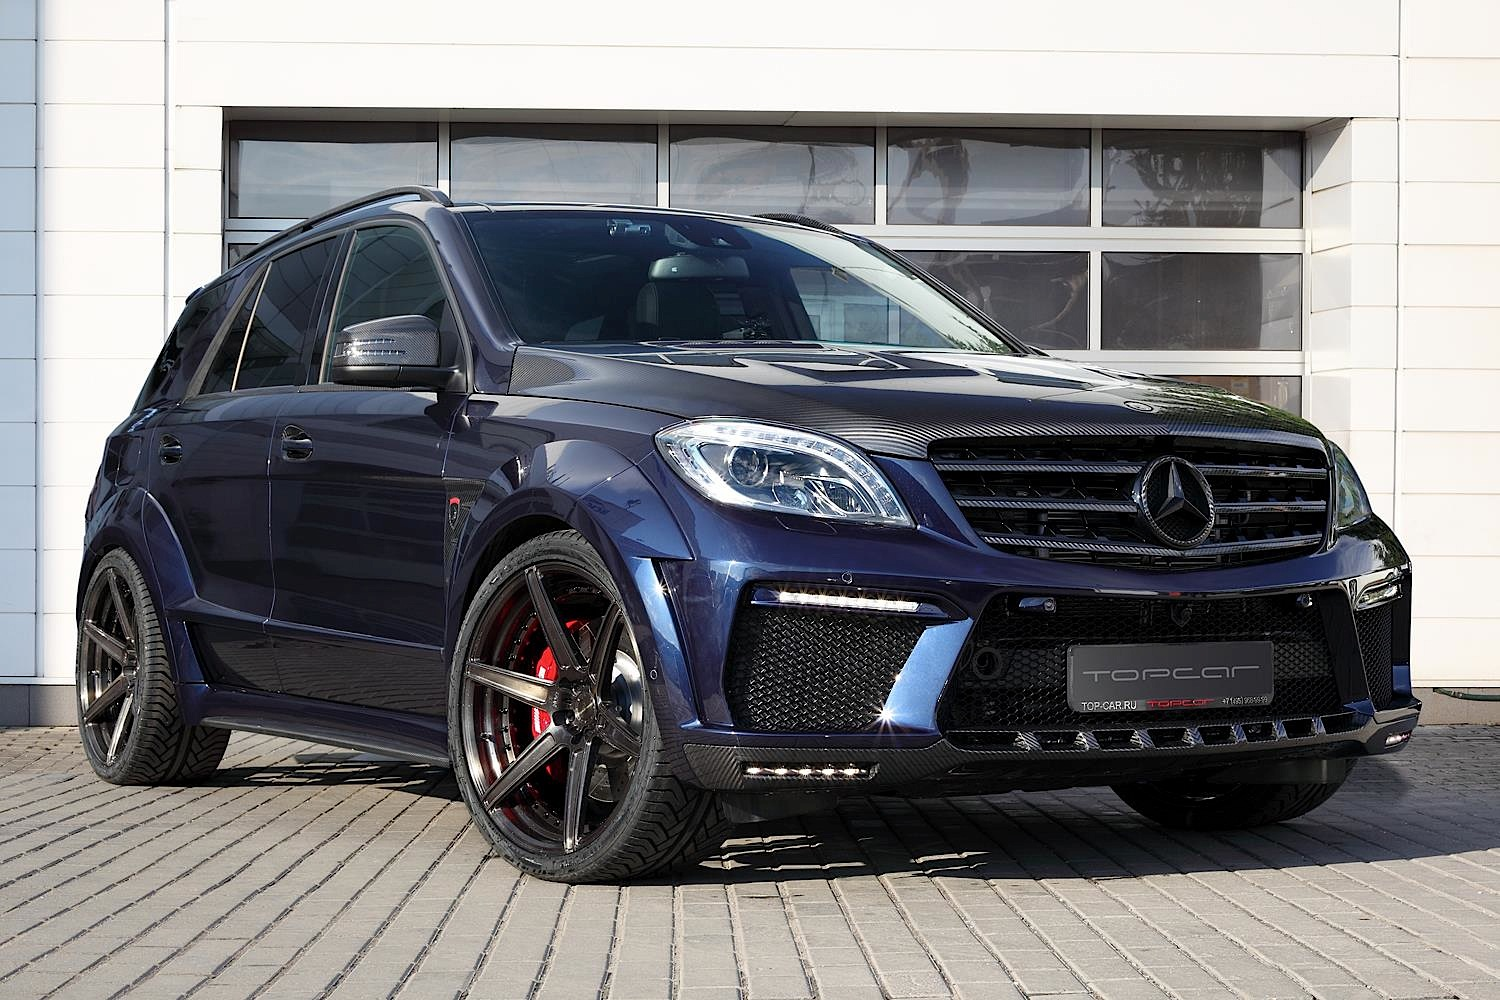 Topcar 39 s ml 63 amg inferno in dark blue looks eerie for Best looking mercedes benz models